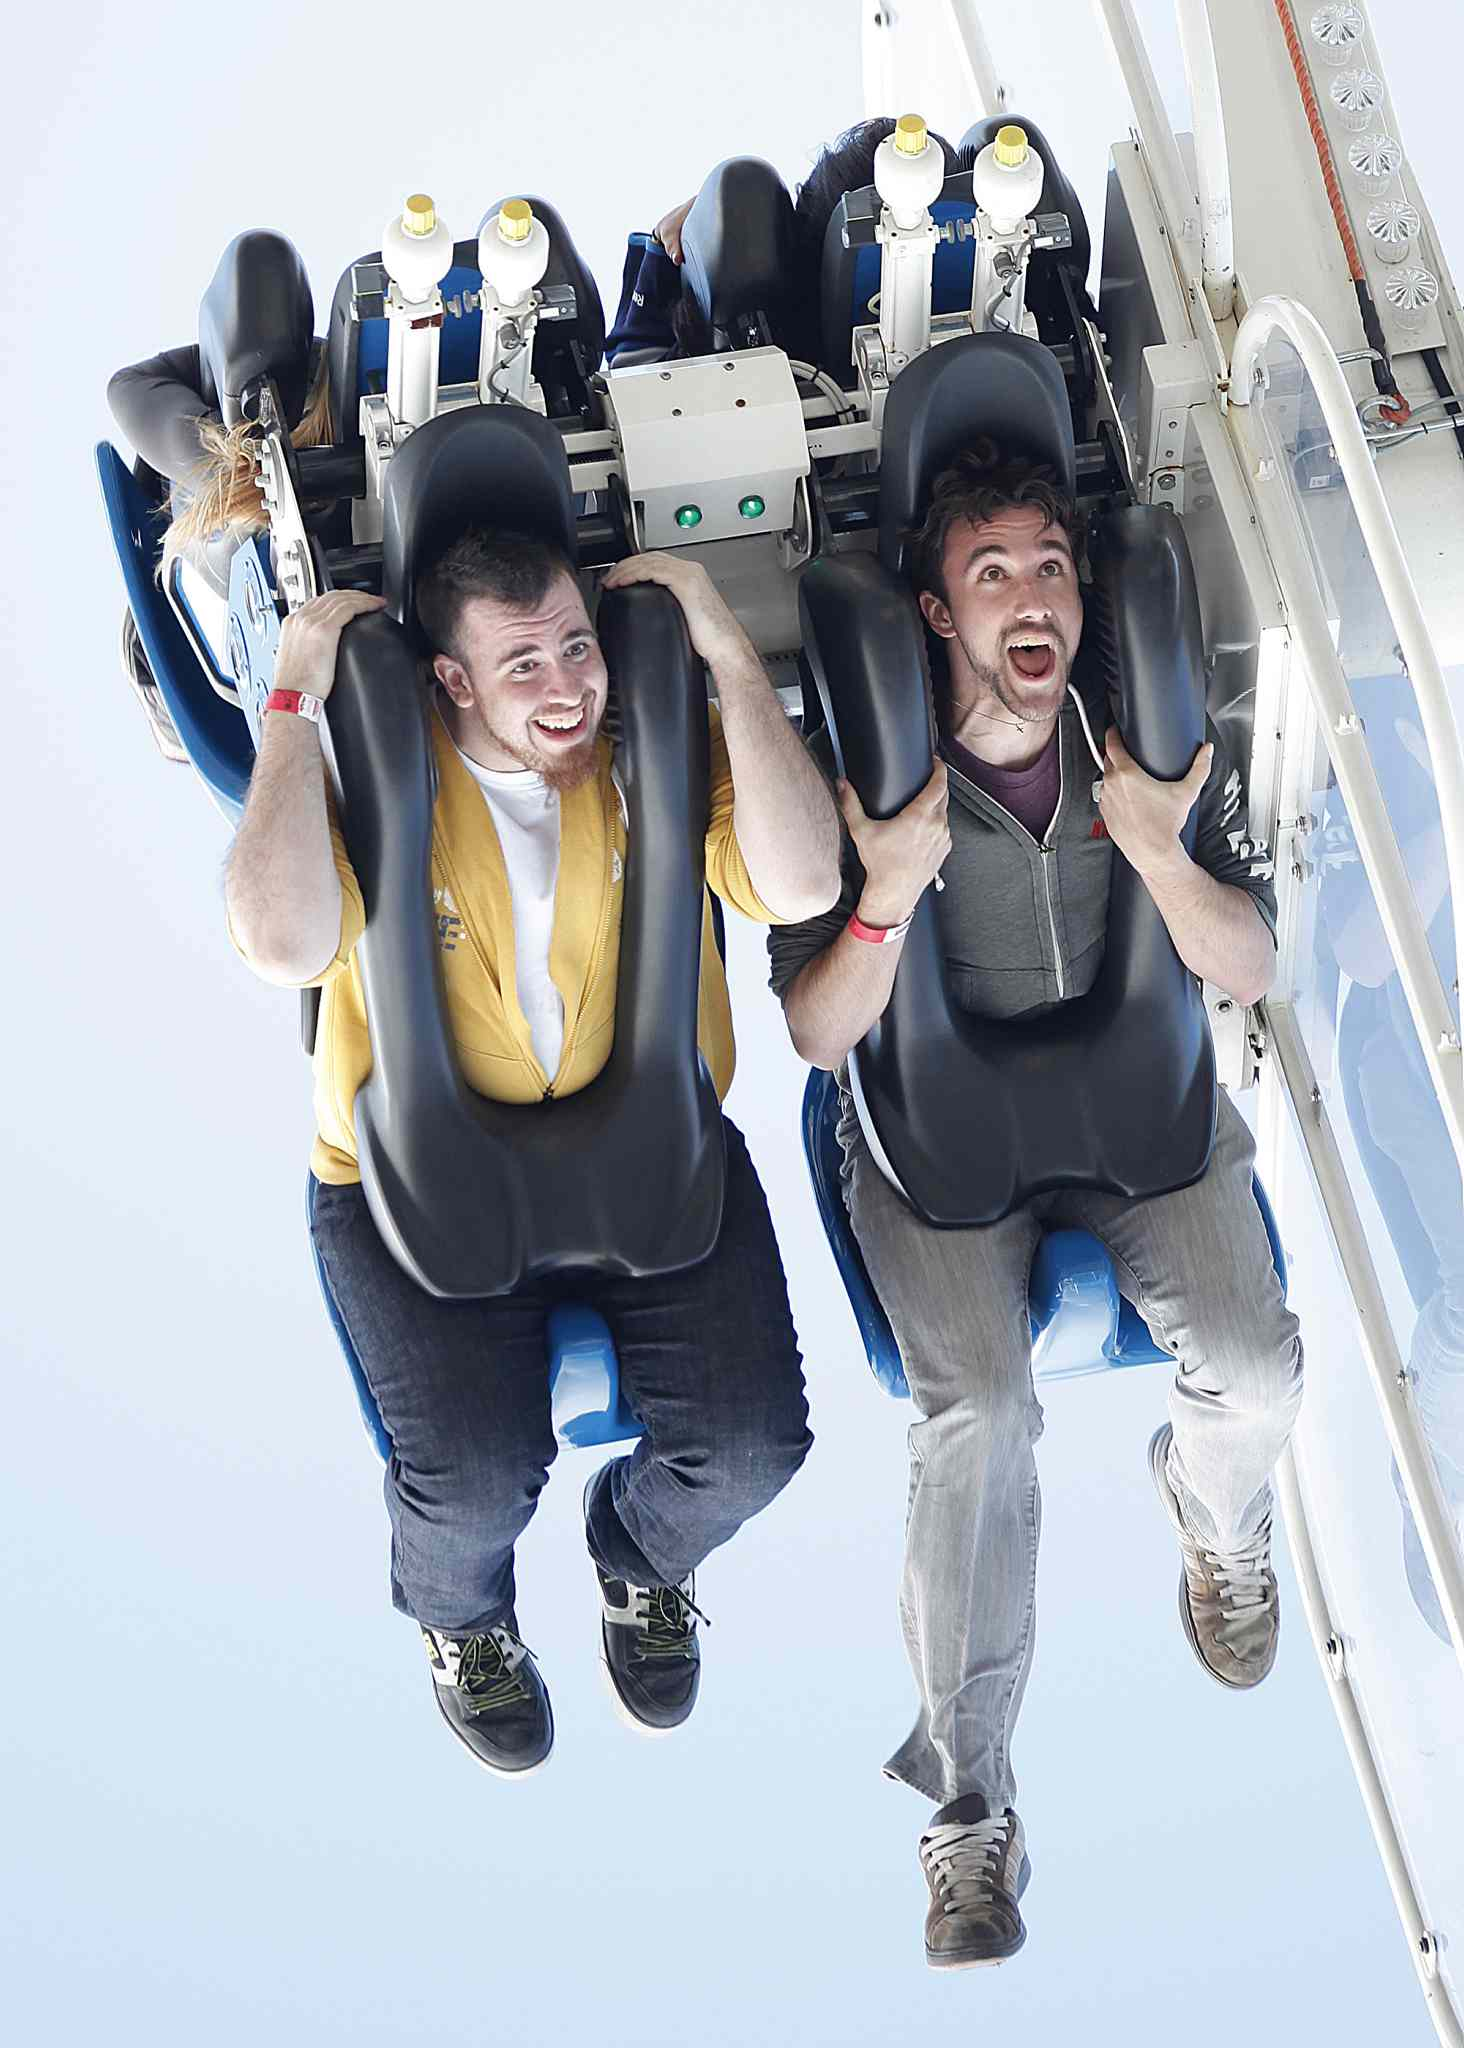 James Greenburgh, left, and Ian Moran on take a ride on Mach 3 at The Ex on Tuesday.